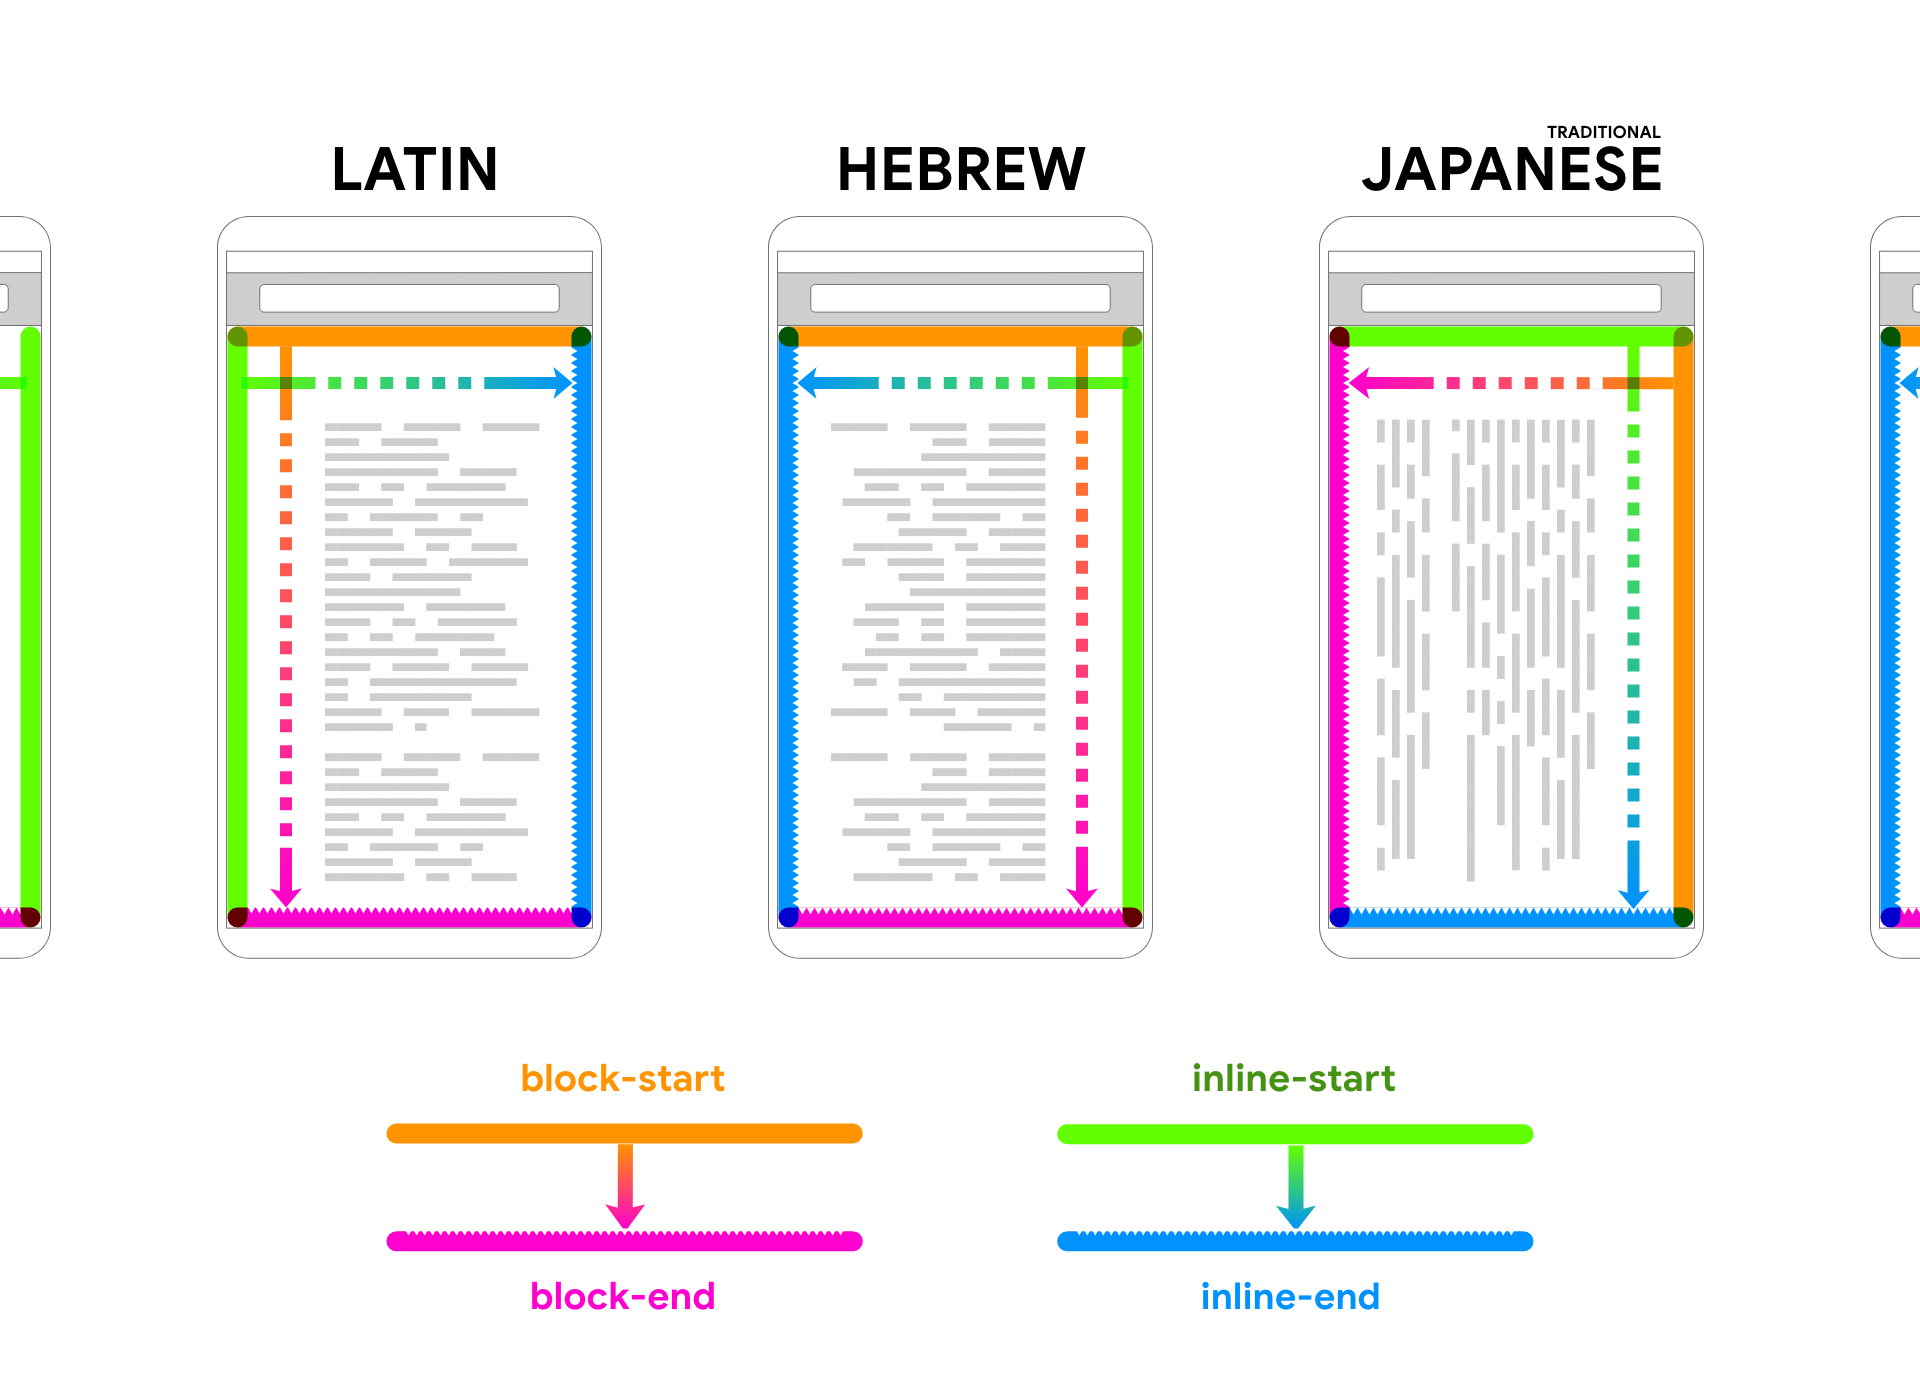 Latin, Hebrew and Japanese are shown rending placeholder text within a device frame. Arrows and colors follow the text to help associate the 2 directions of block and inline.